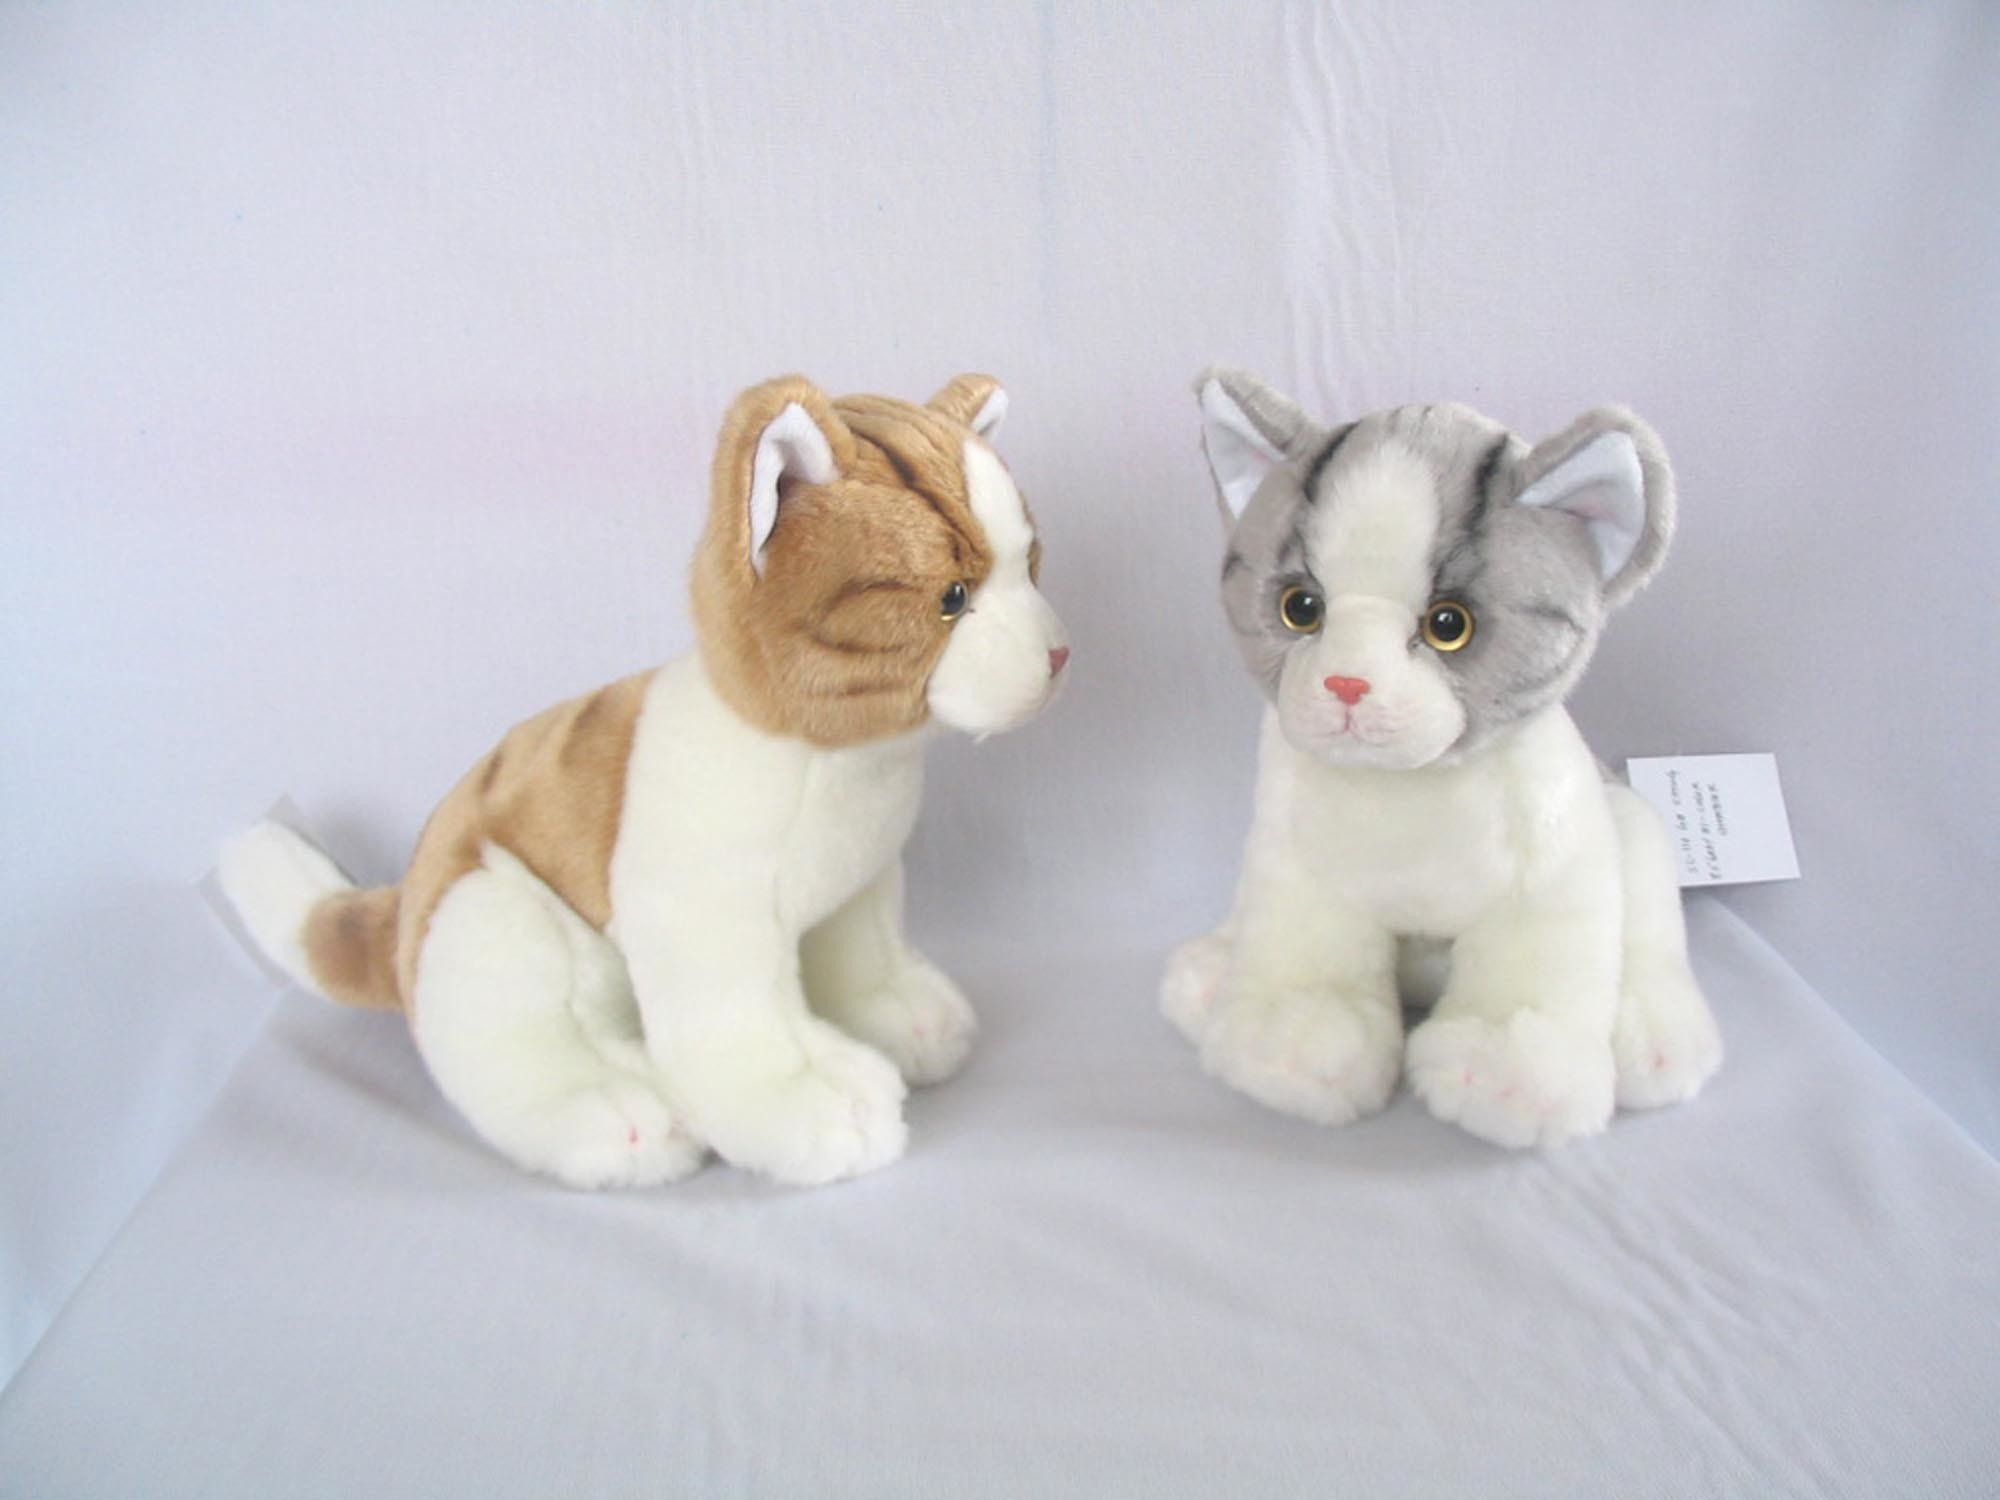 Ghetto stuffed kitten toys days